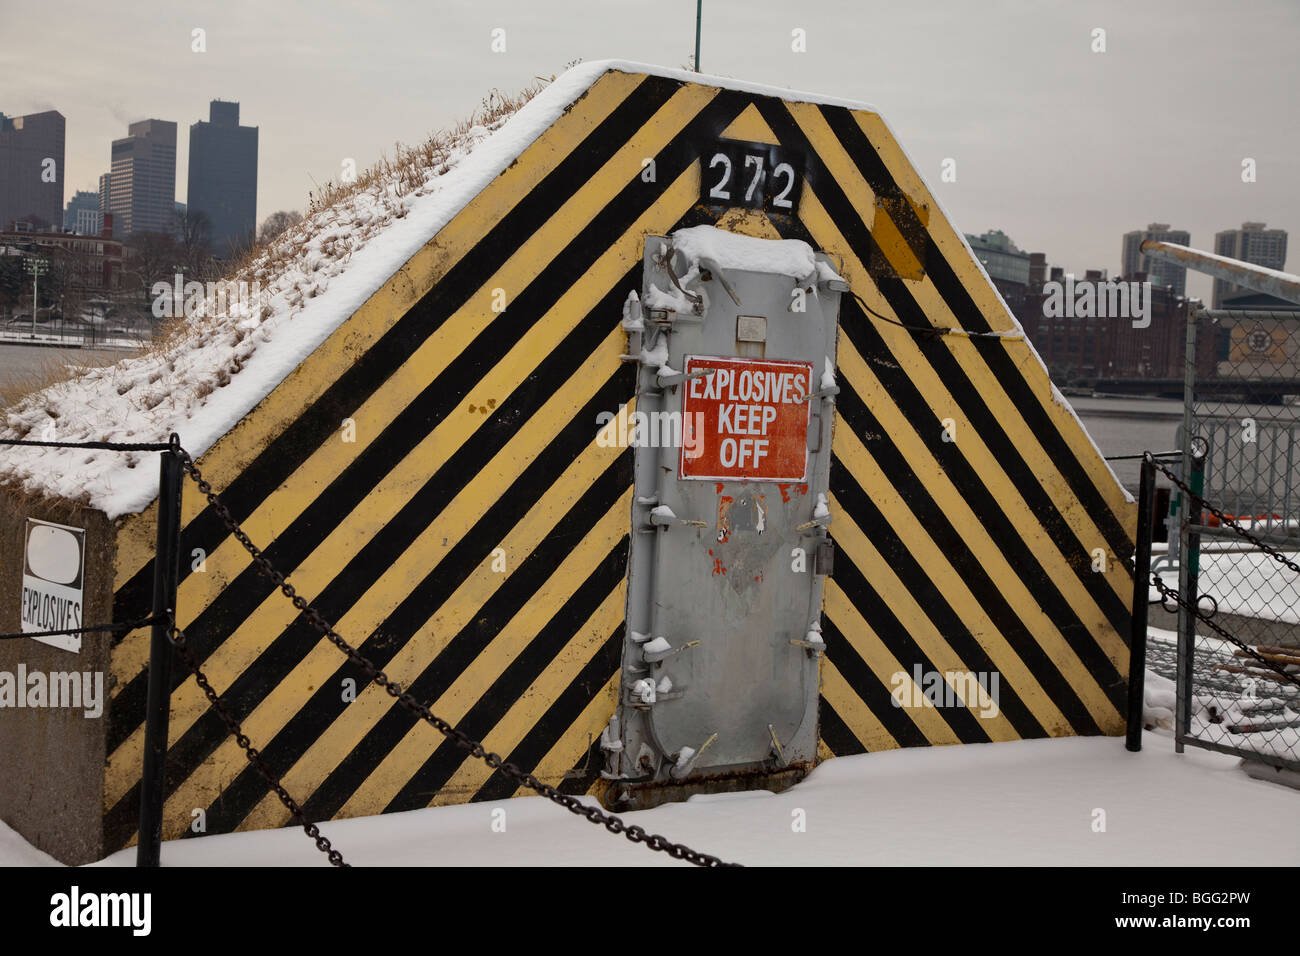 Small building where explosives are stored - Stock Image